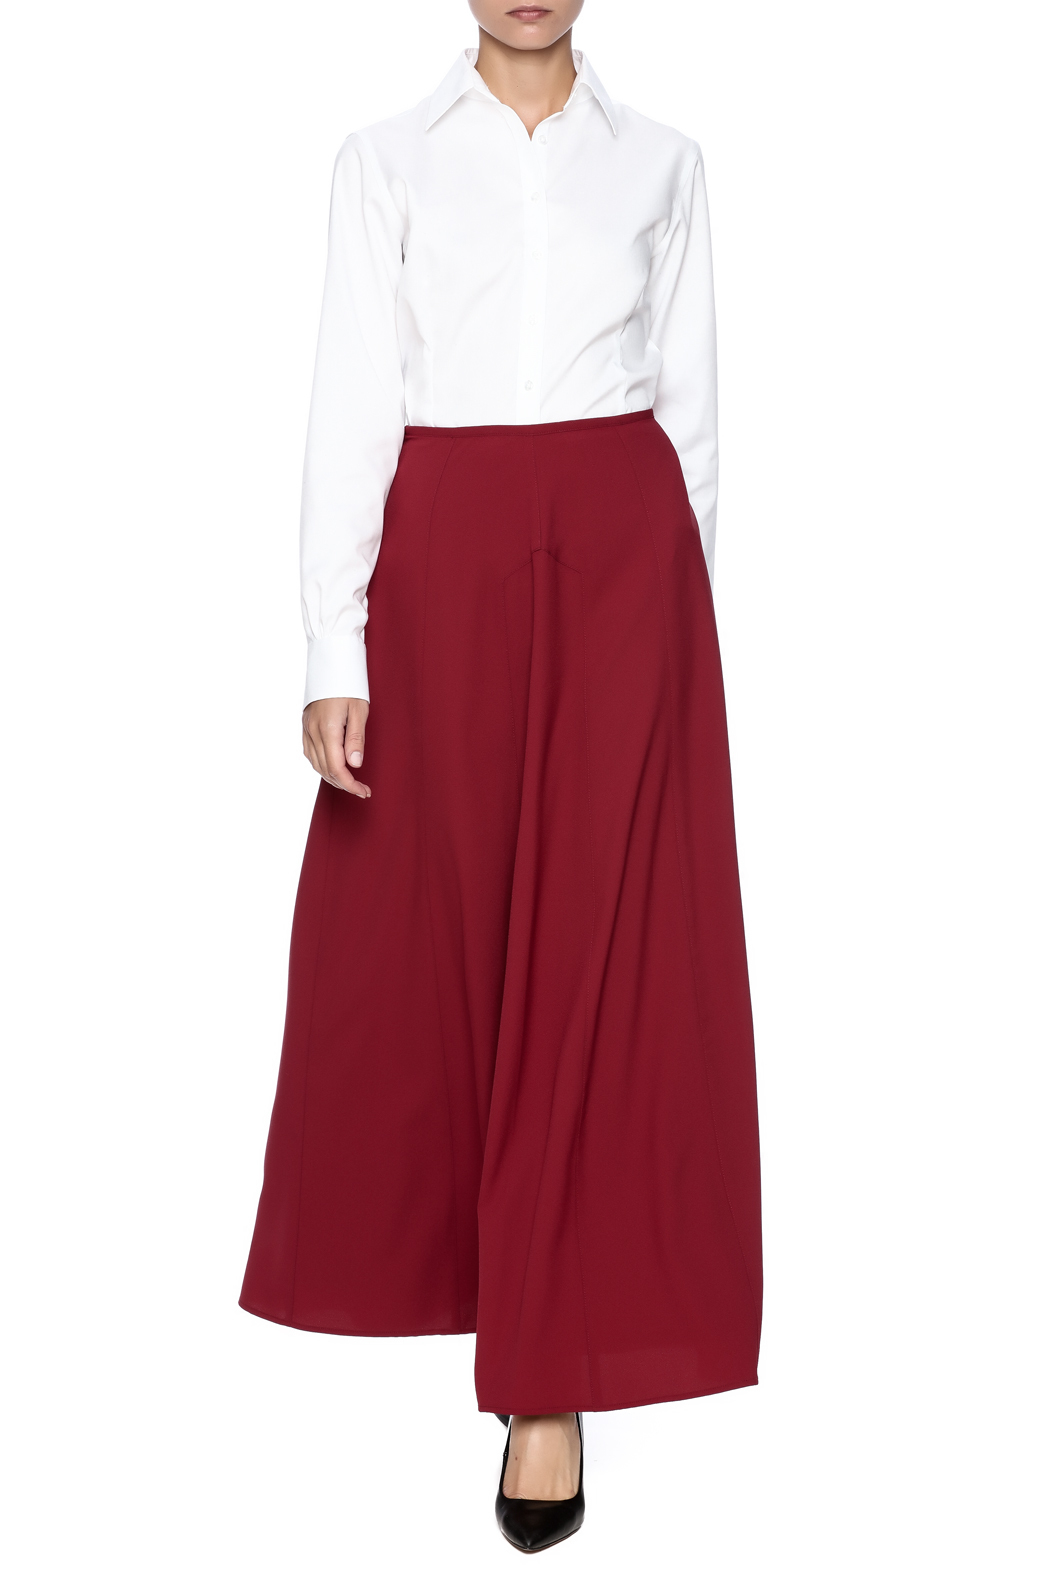 The Cue A Line Maxi Skirt - Front Full Image